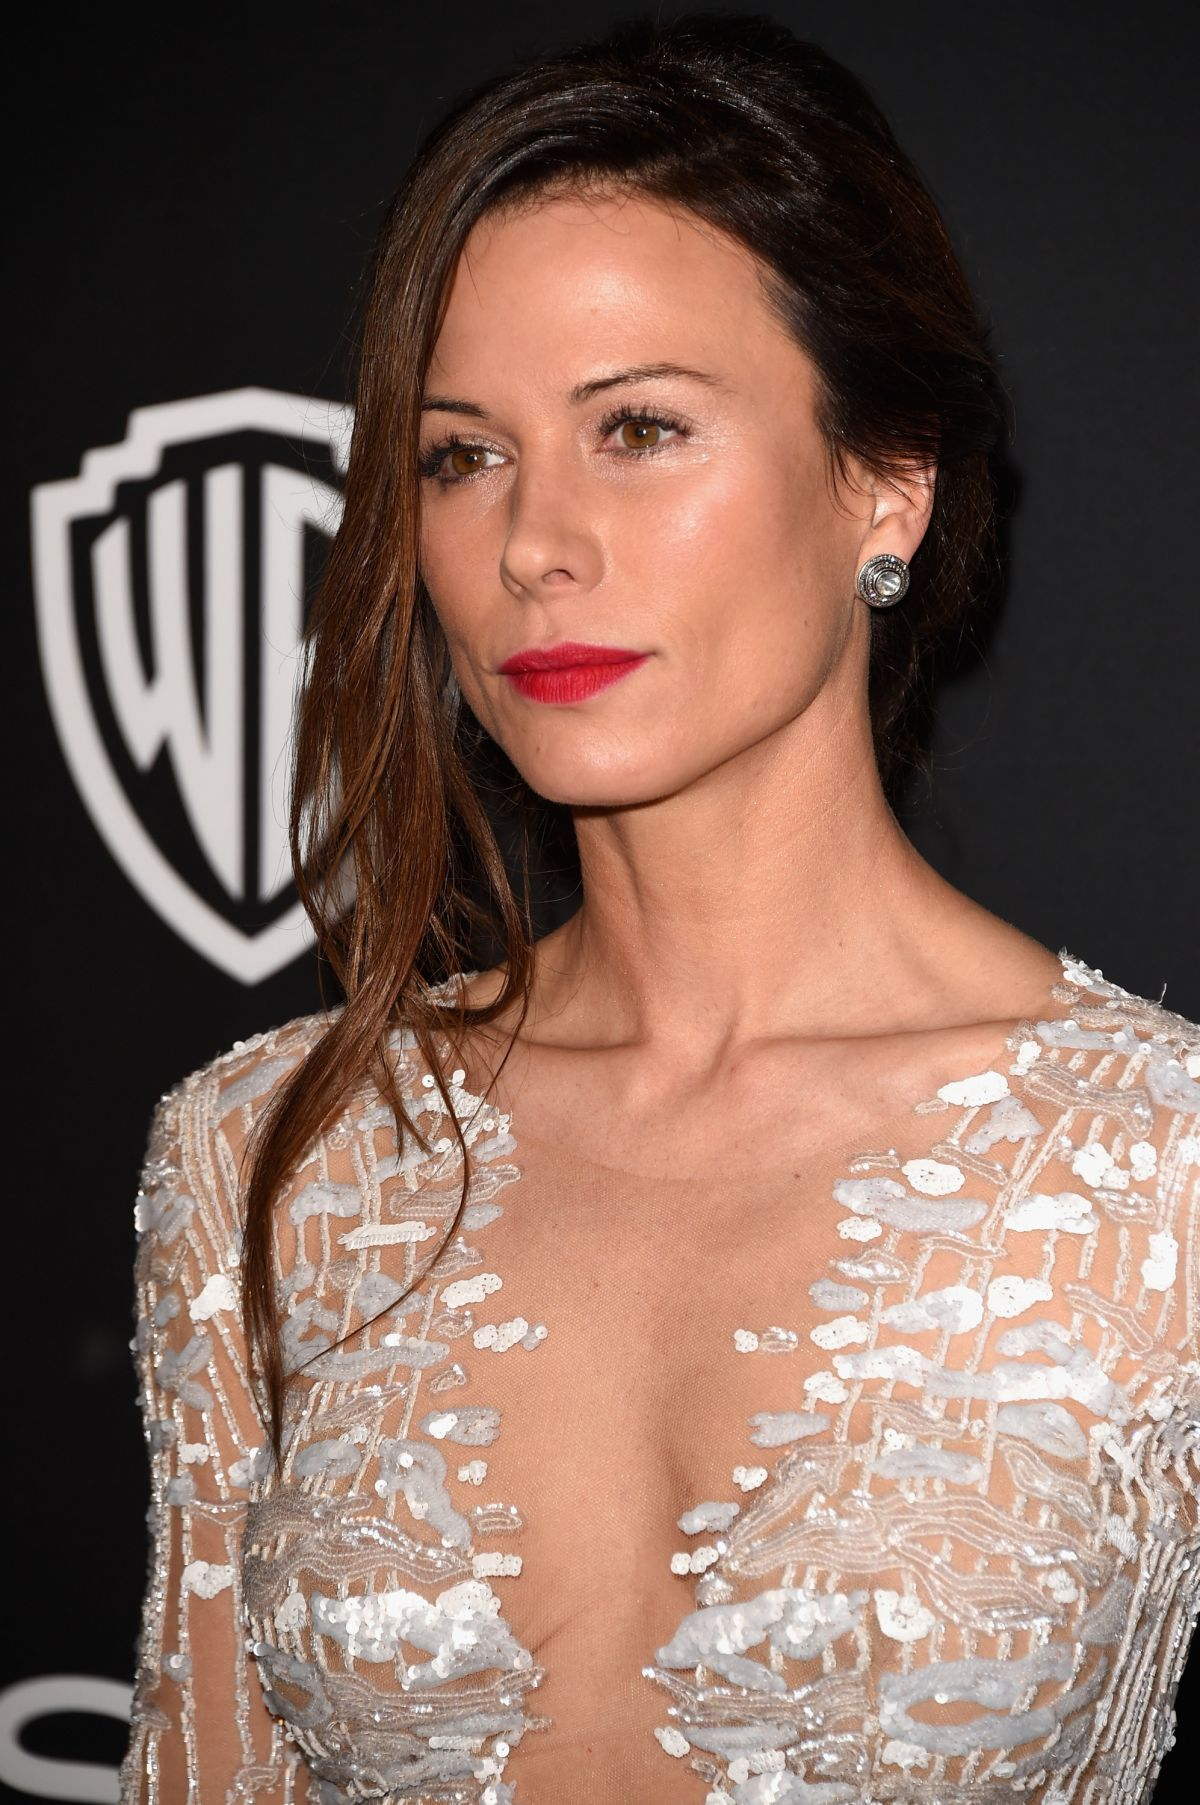 RHONA MITRA at Instyle and Warner Bros Golden Globes Party